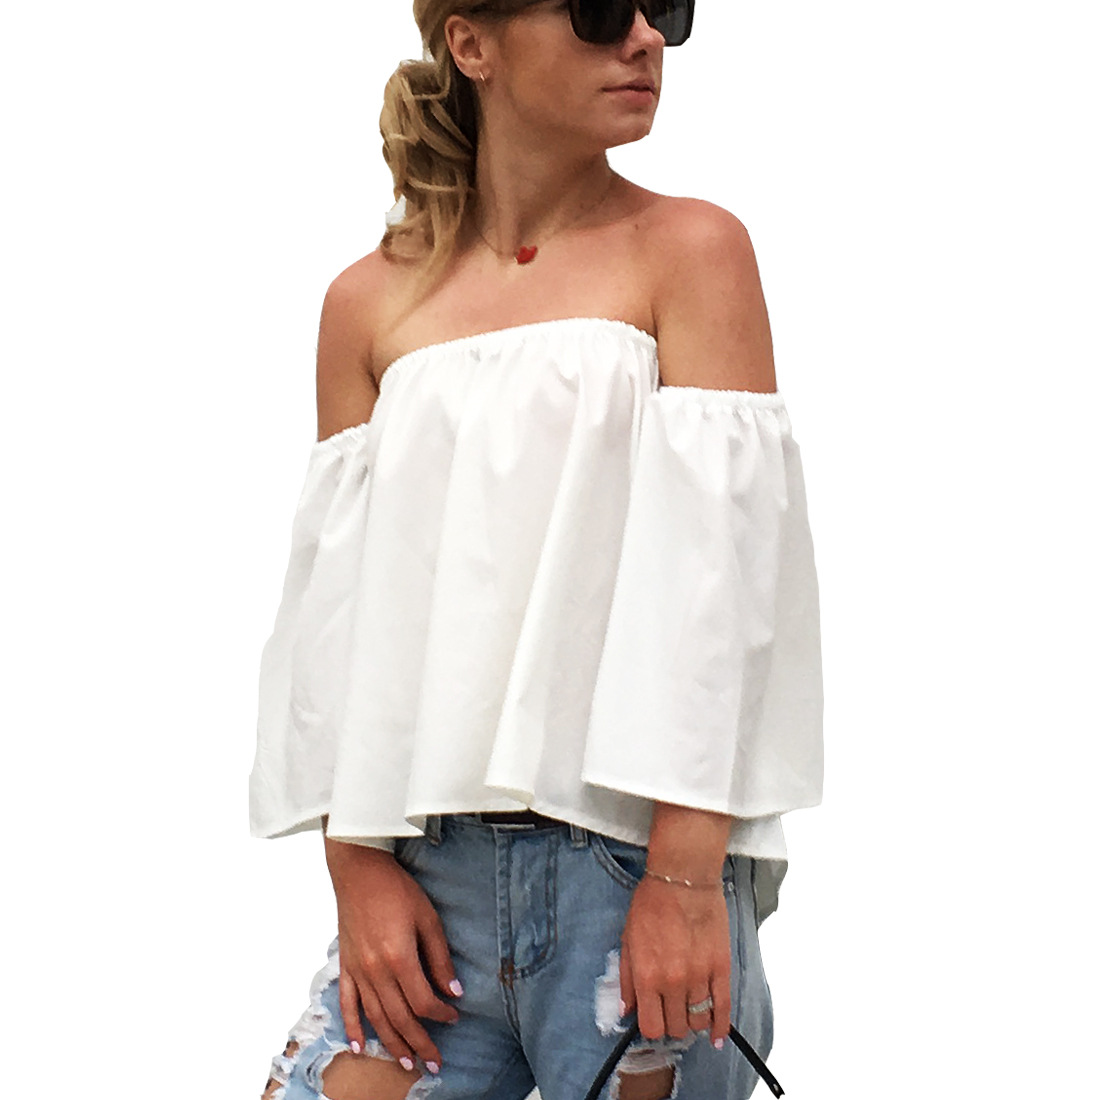 Women's Blusas Summer Sexy Wrapped Chest Slash Neck Strapless Loose Three Quarter Sleeve Shirts Casual Chiffon Blouse Shirt Tops